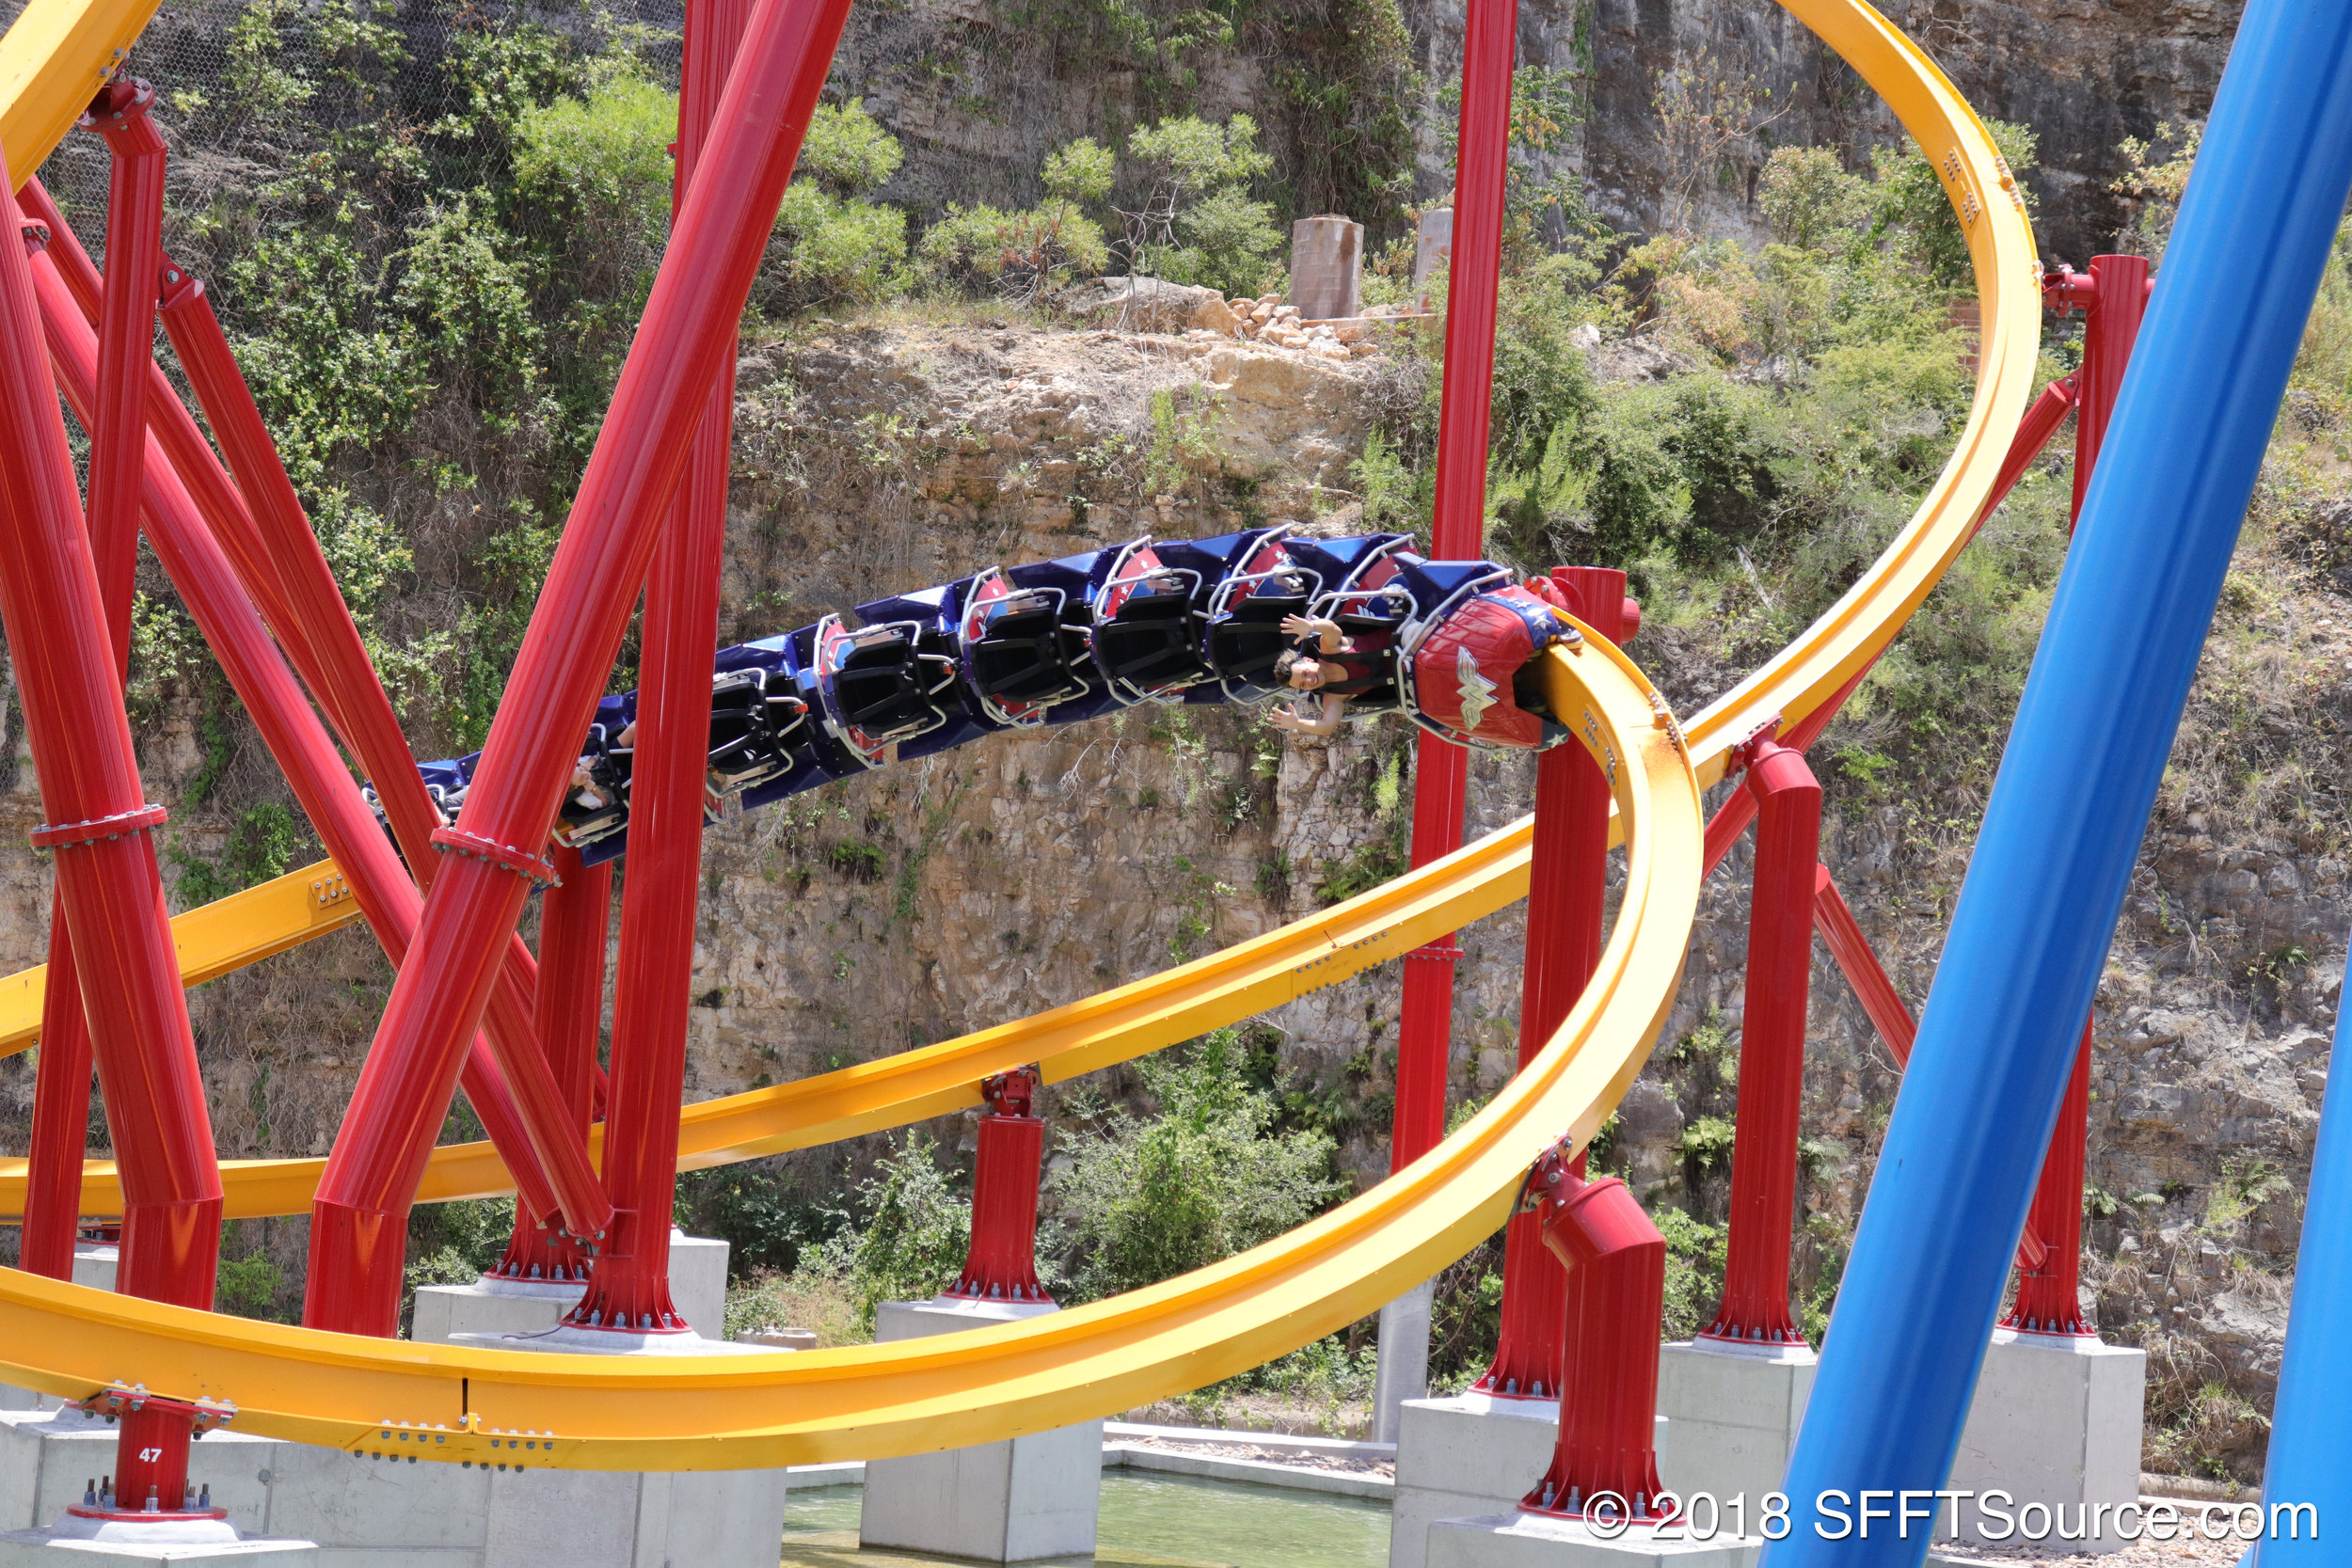 The ride also features many quick turns.